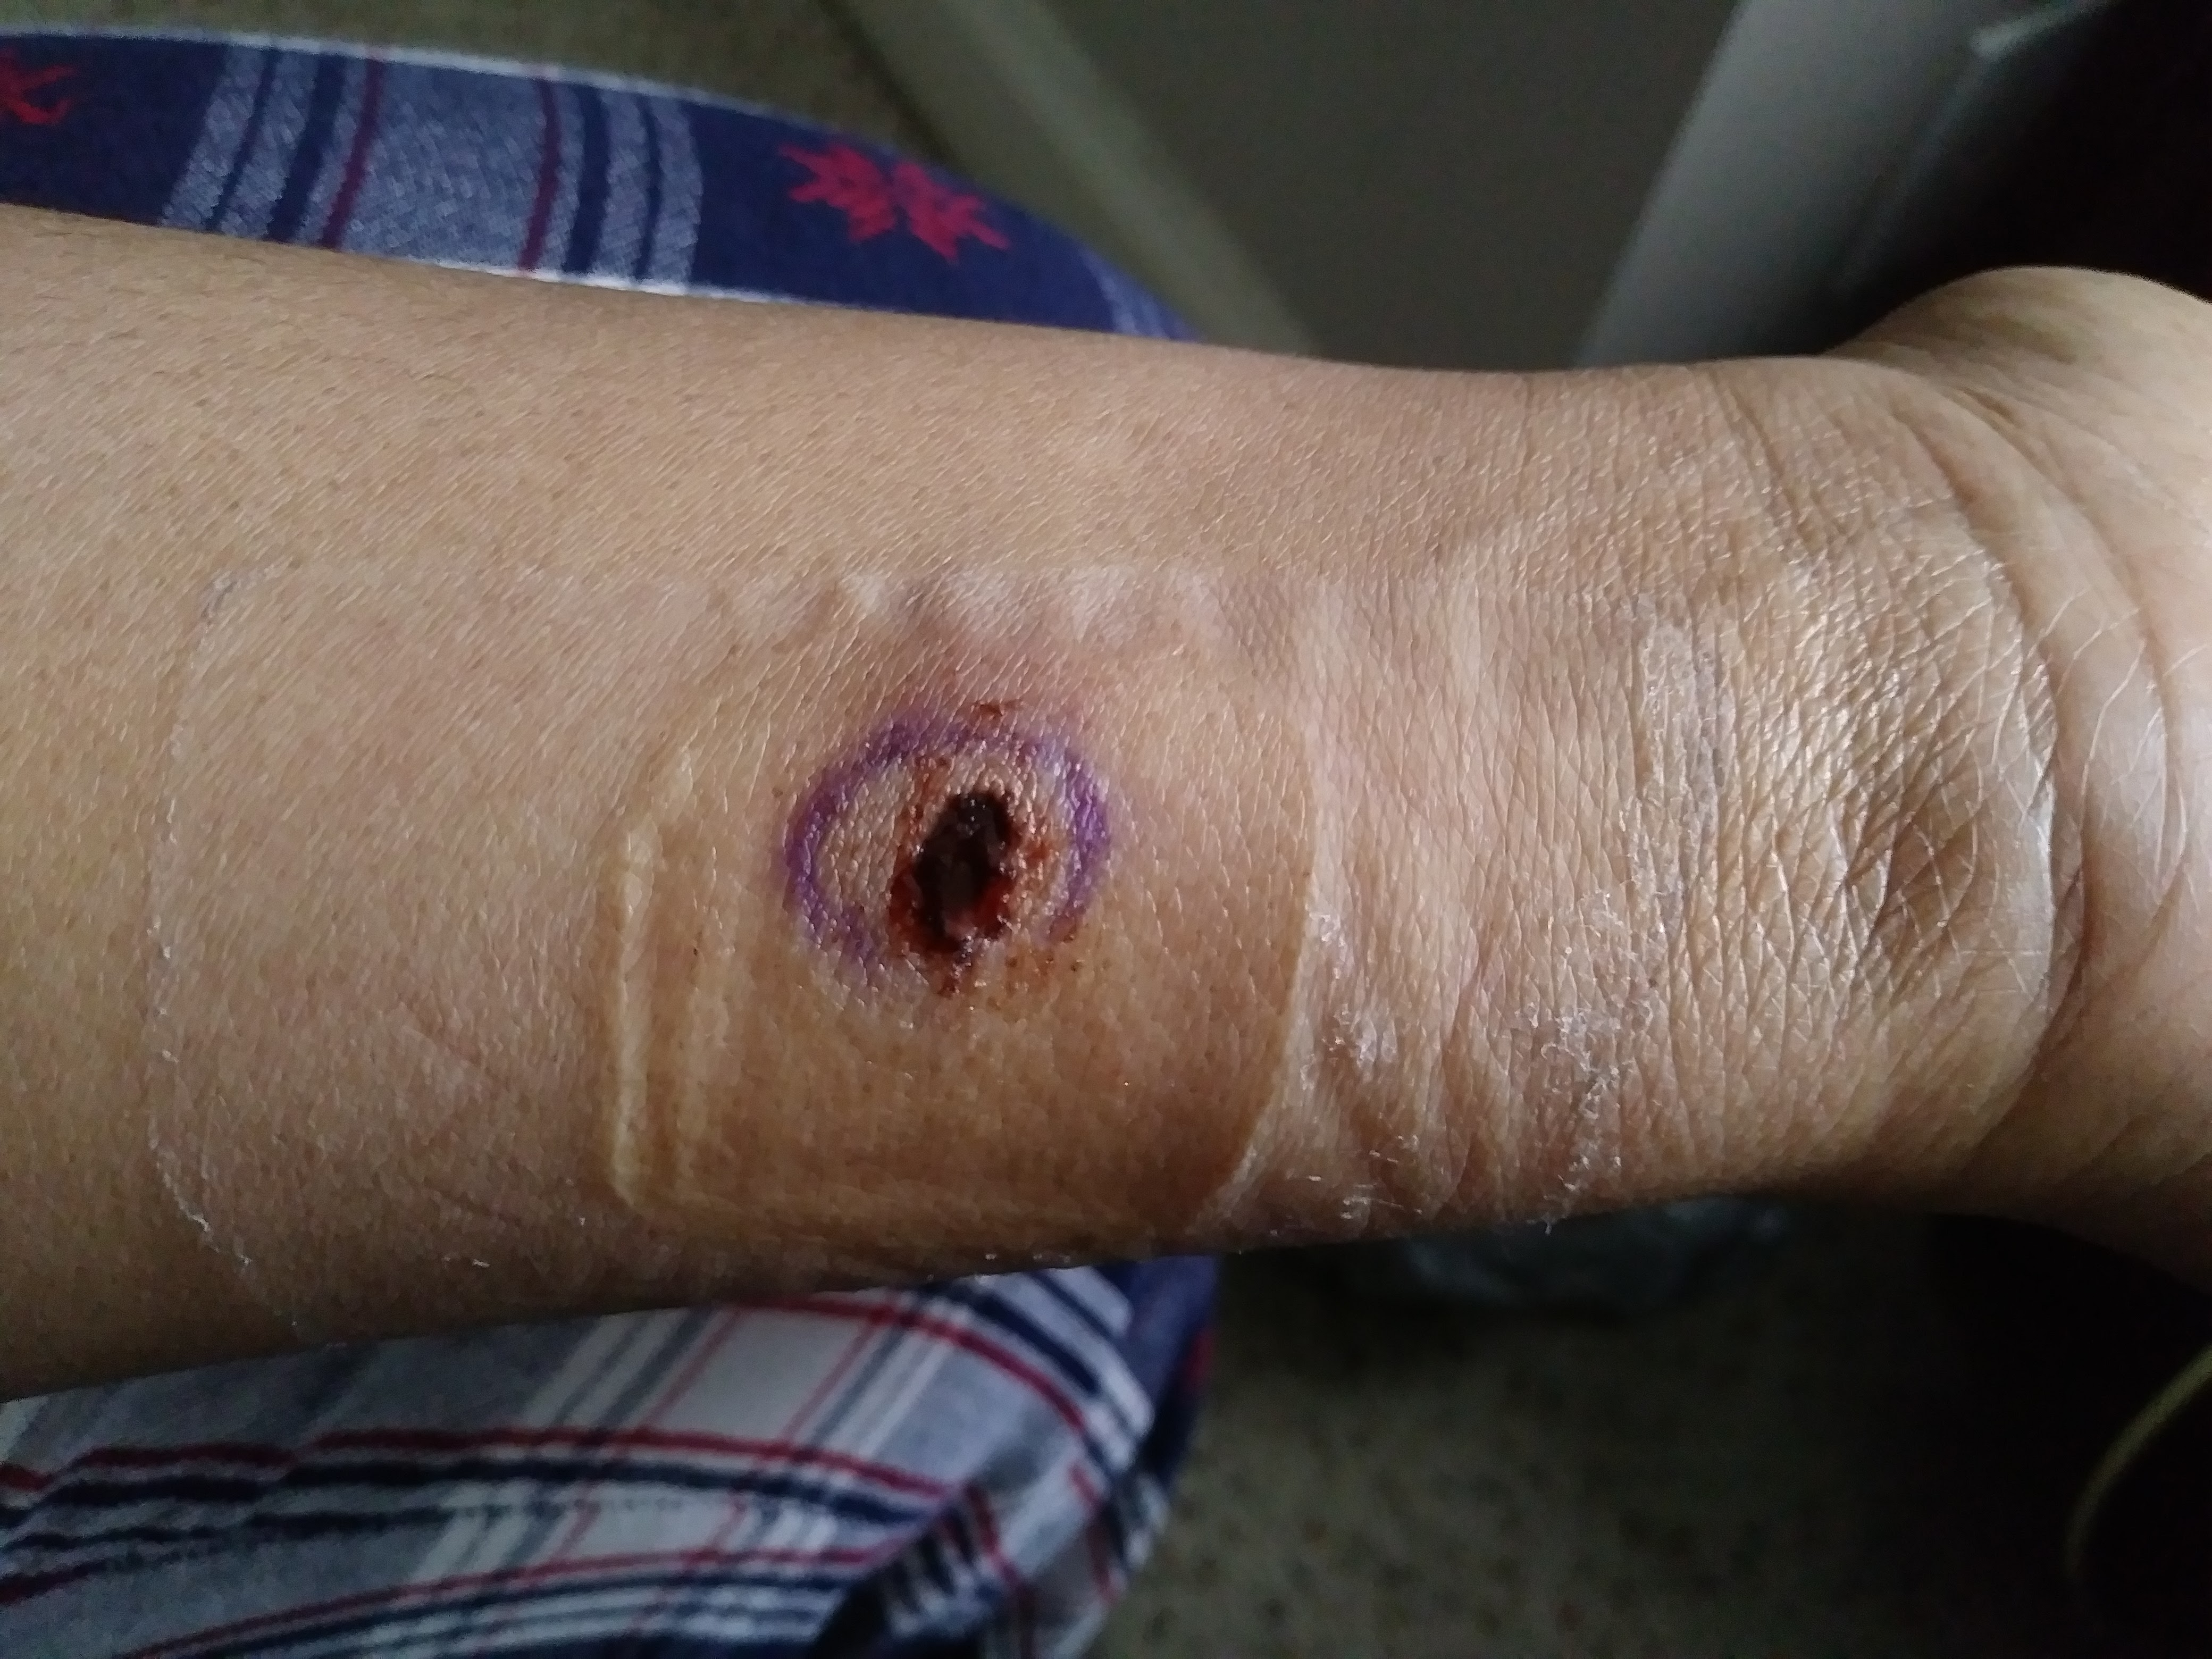 This is the way the punch biopsy looked the day after it was done. At this moment it looks a lot prettier. lol